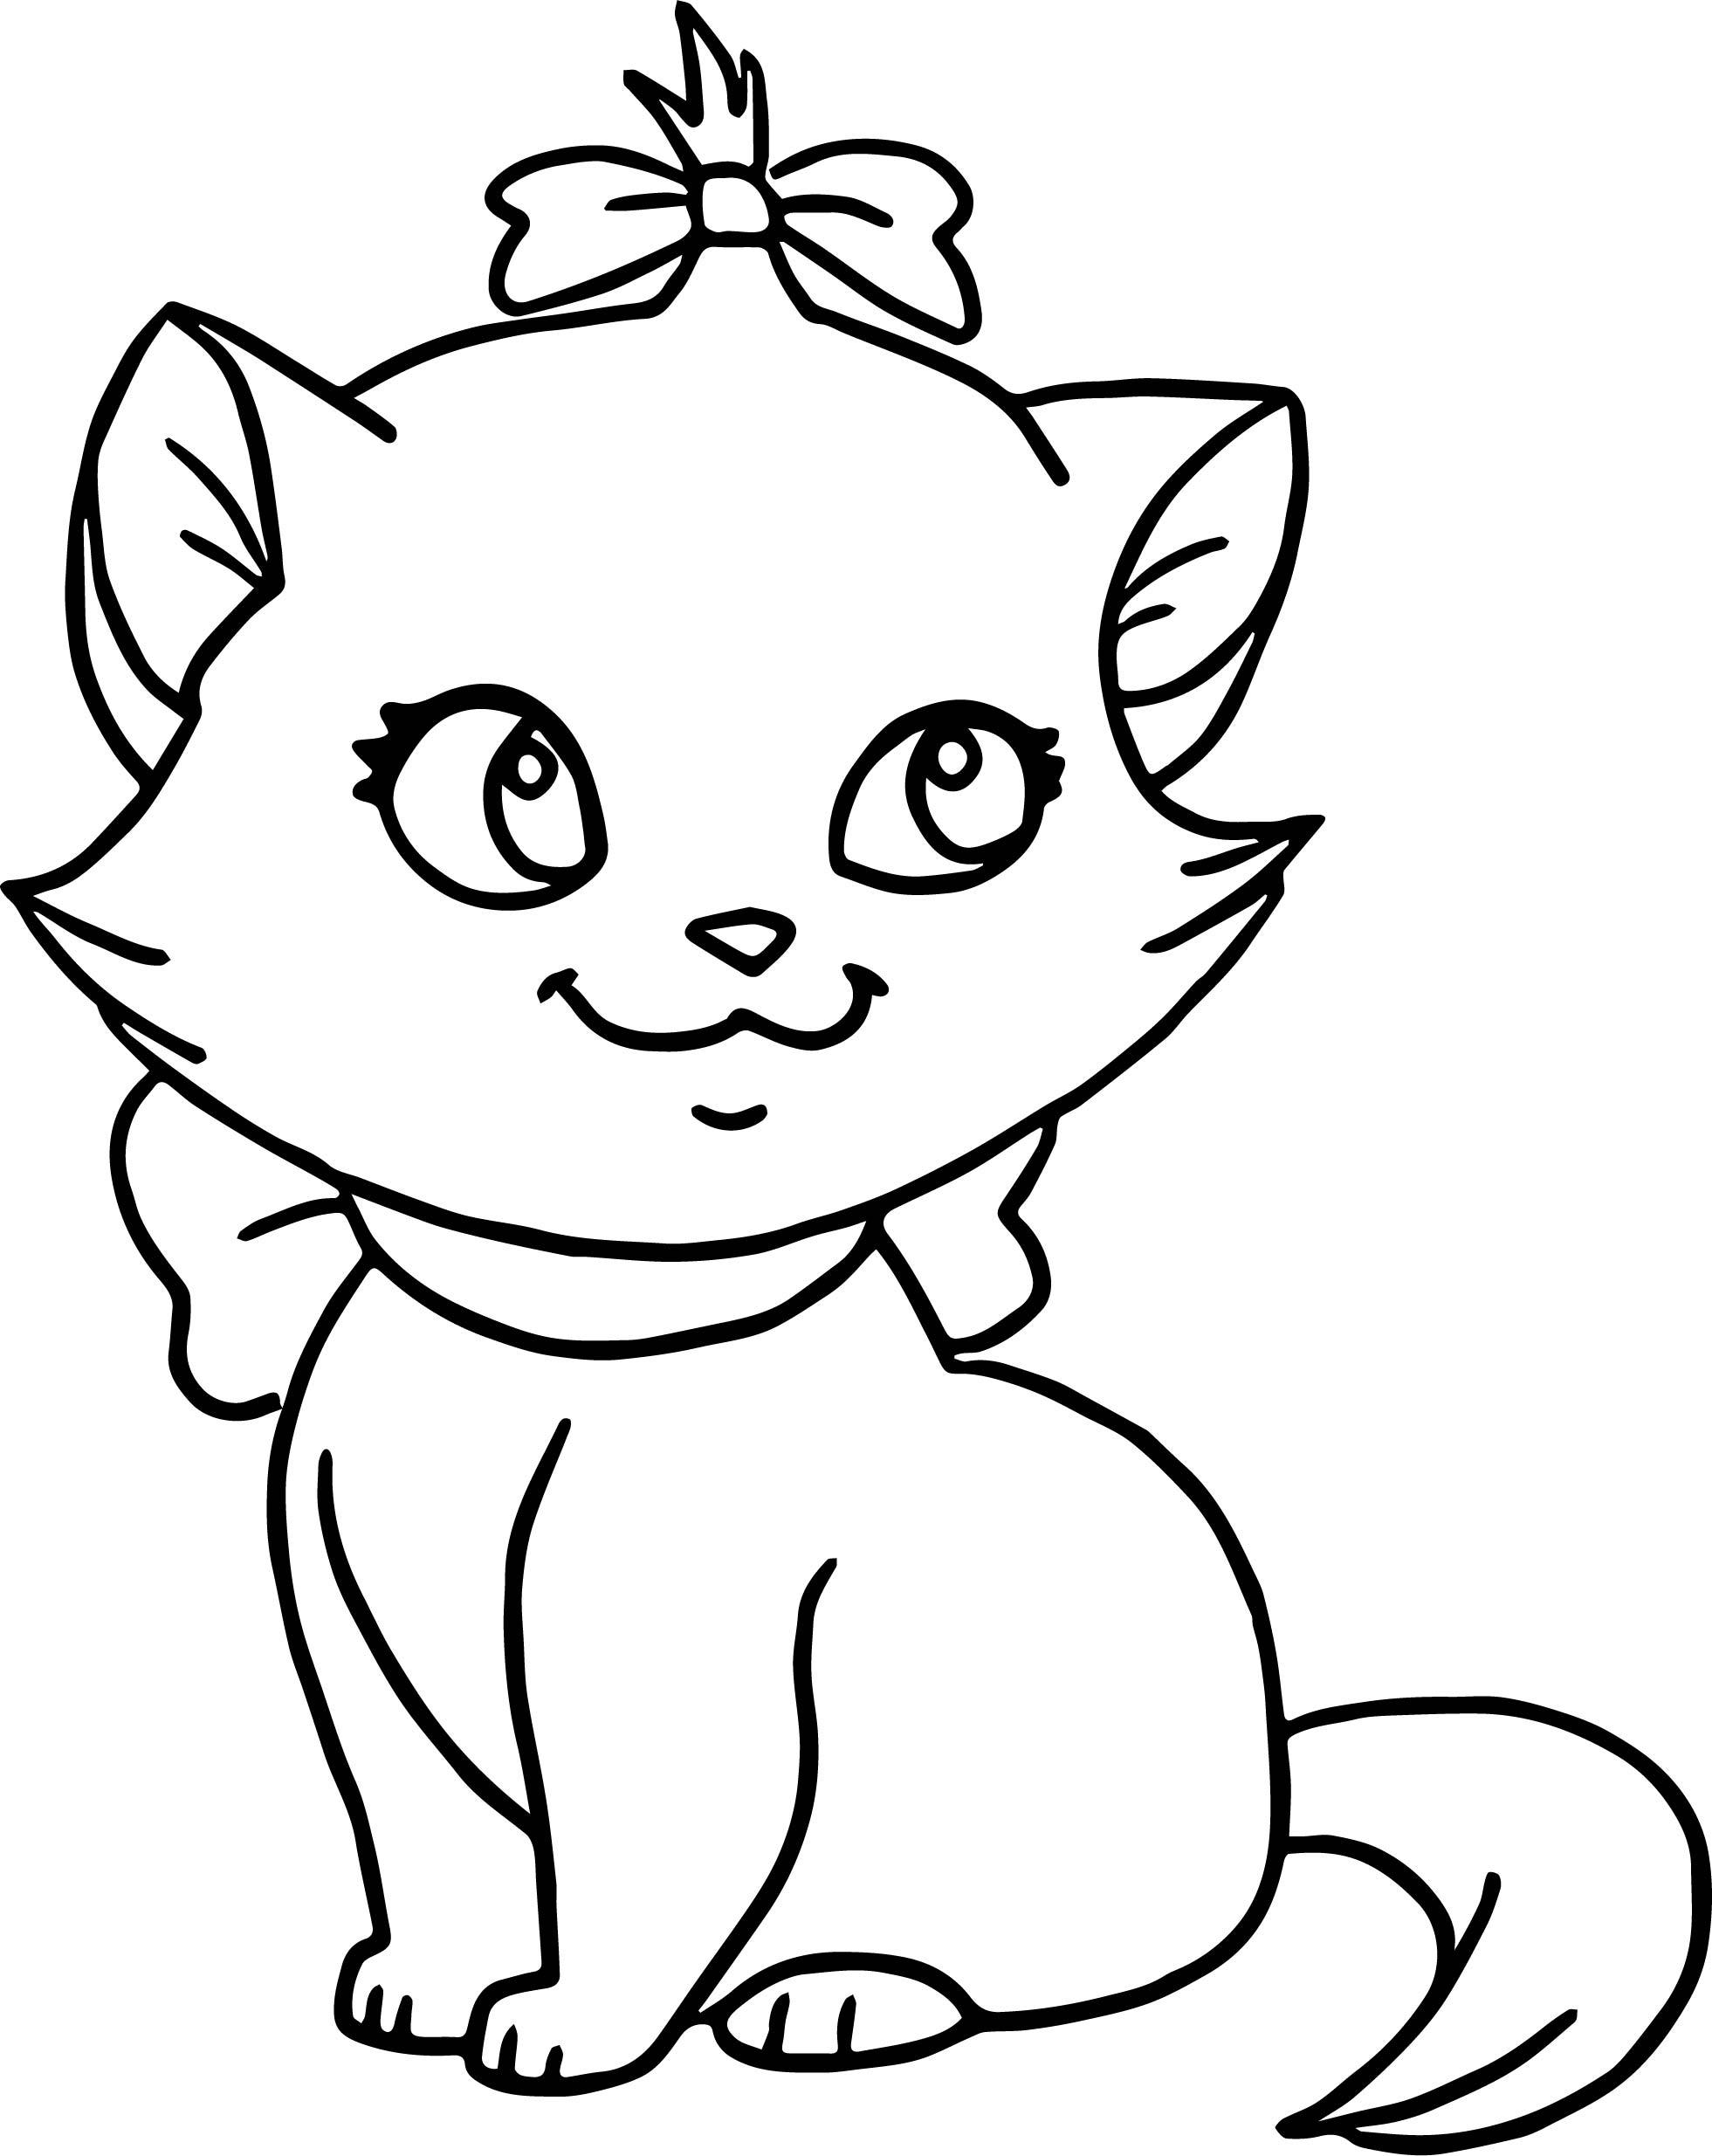 Baby Kitten Coloring Pages : kitten, coloring, pages, Preschool, Kitten, Coloring, Pages